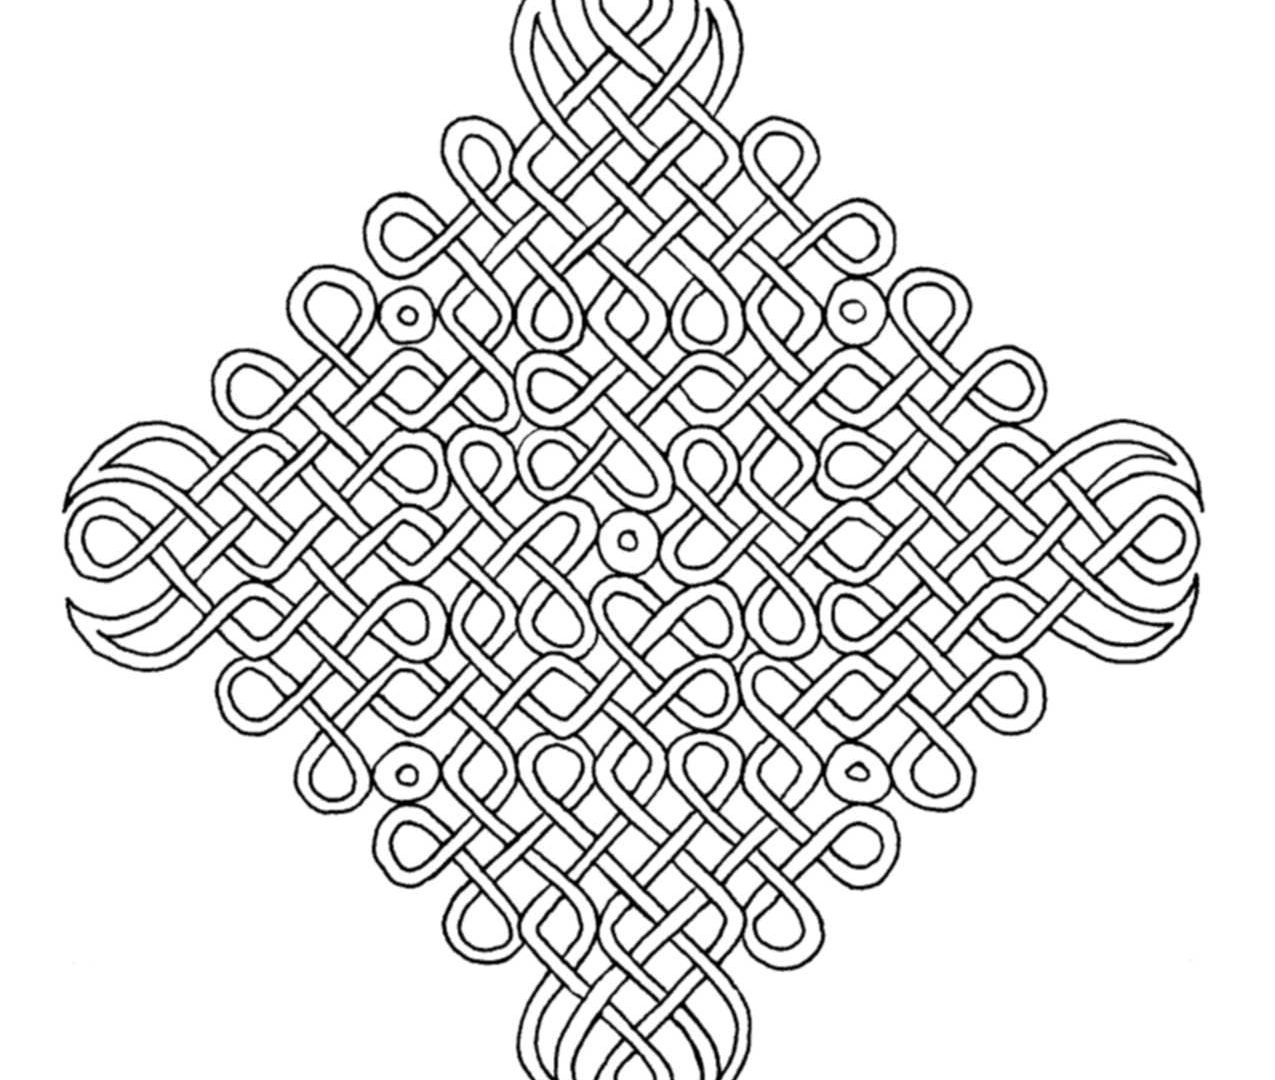 1275x1080 Complex Coloring Pages For Girls Free Printable Adults Colouring